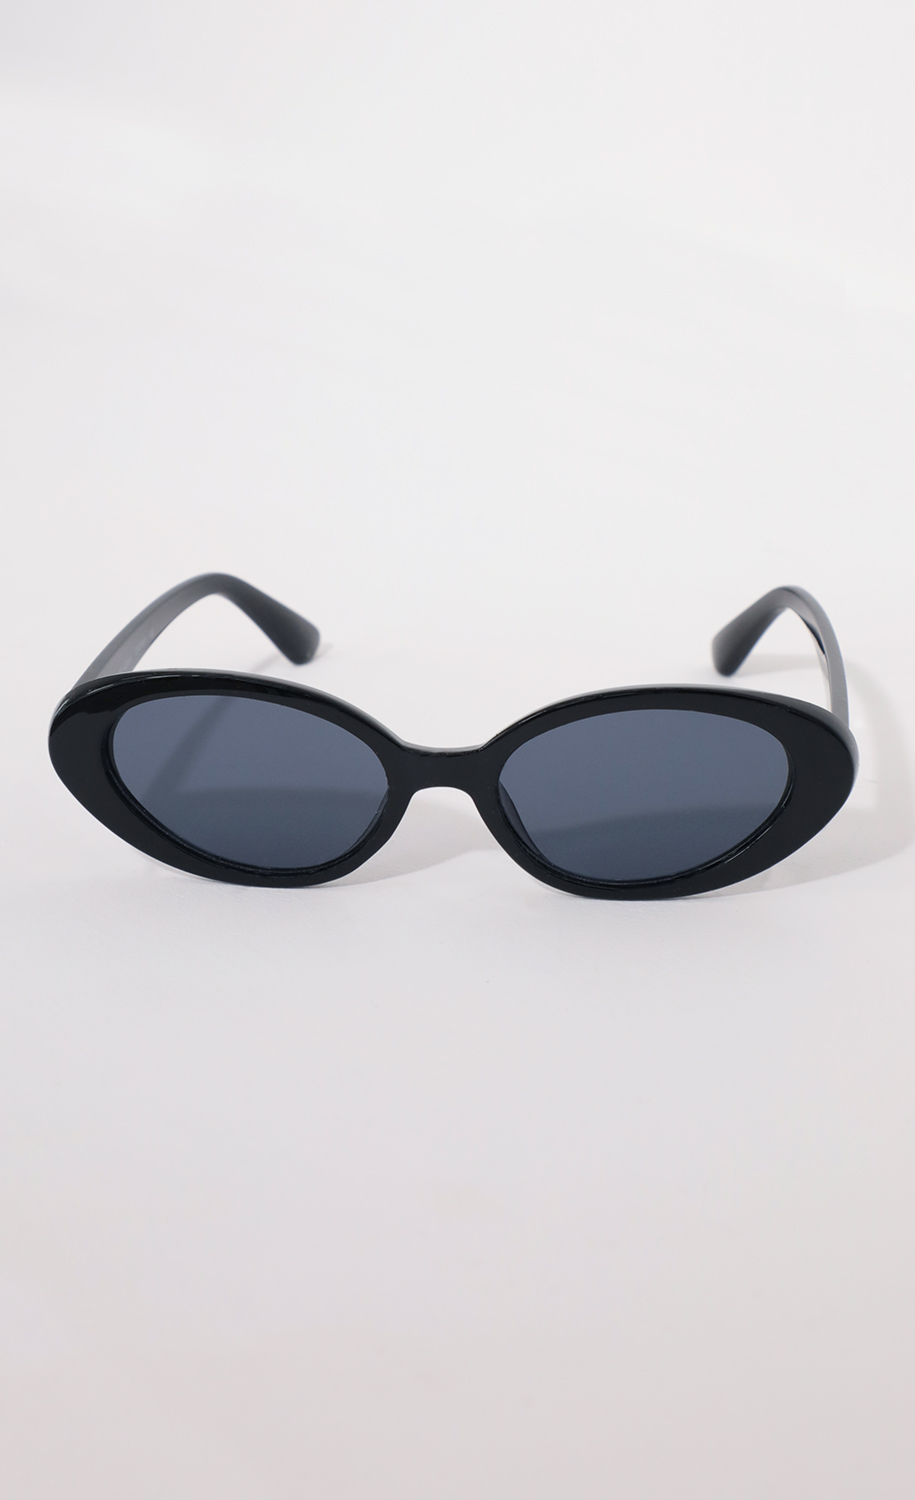 The Jet Setter Sunglasses in Black